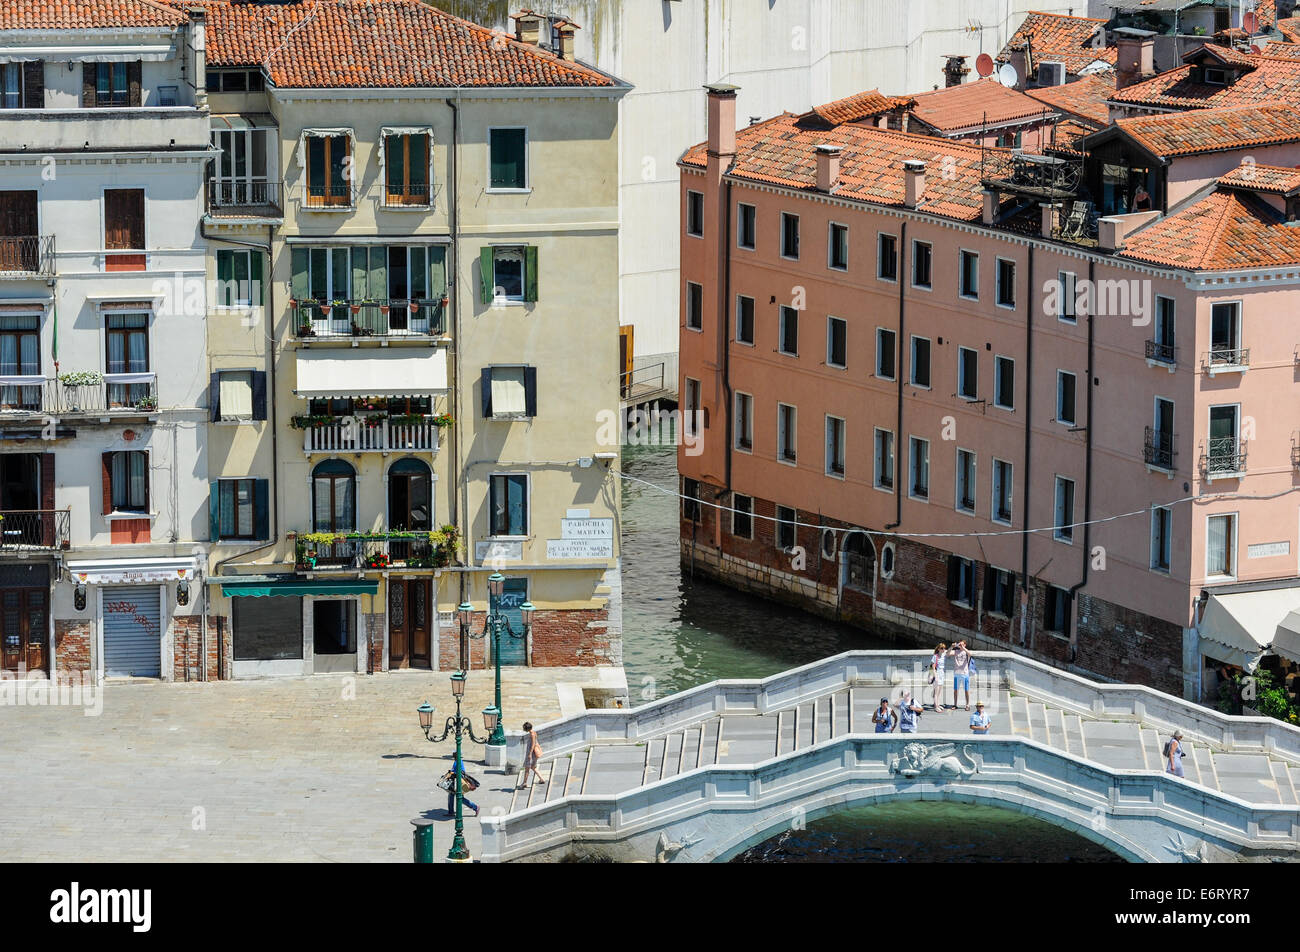 Traditional Venetian buildings facing the grand canal with shuttered windows and doors. - Stock Image